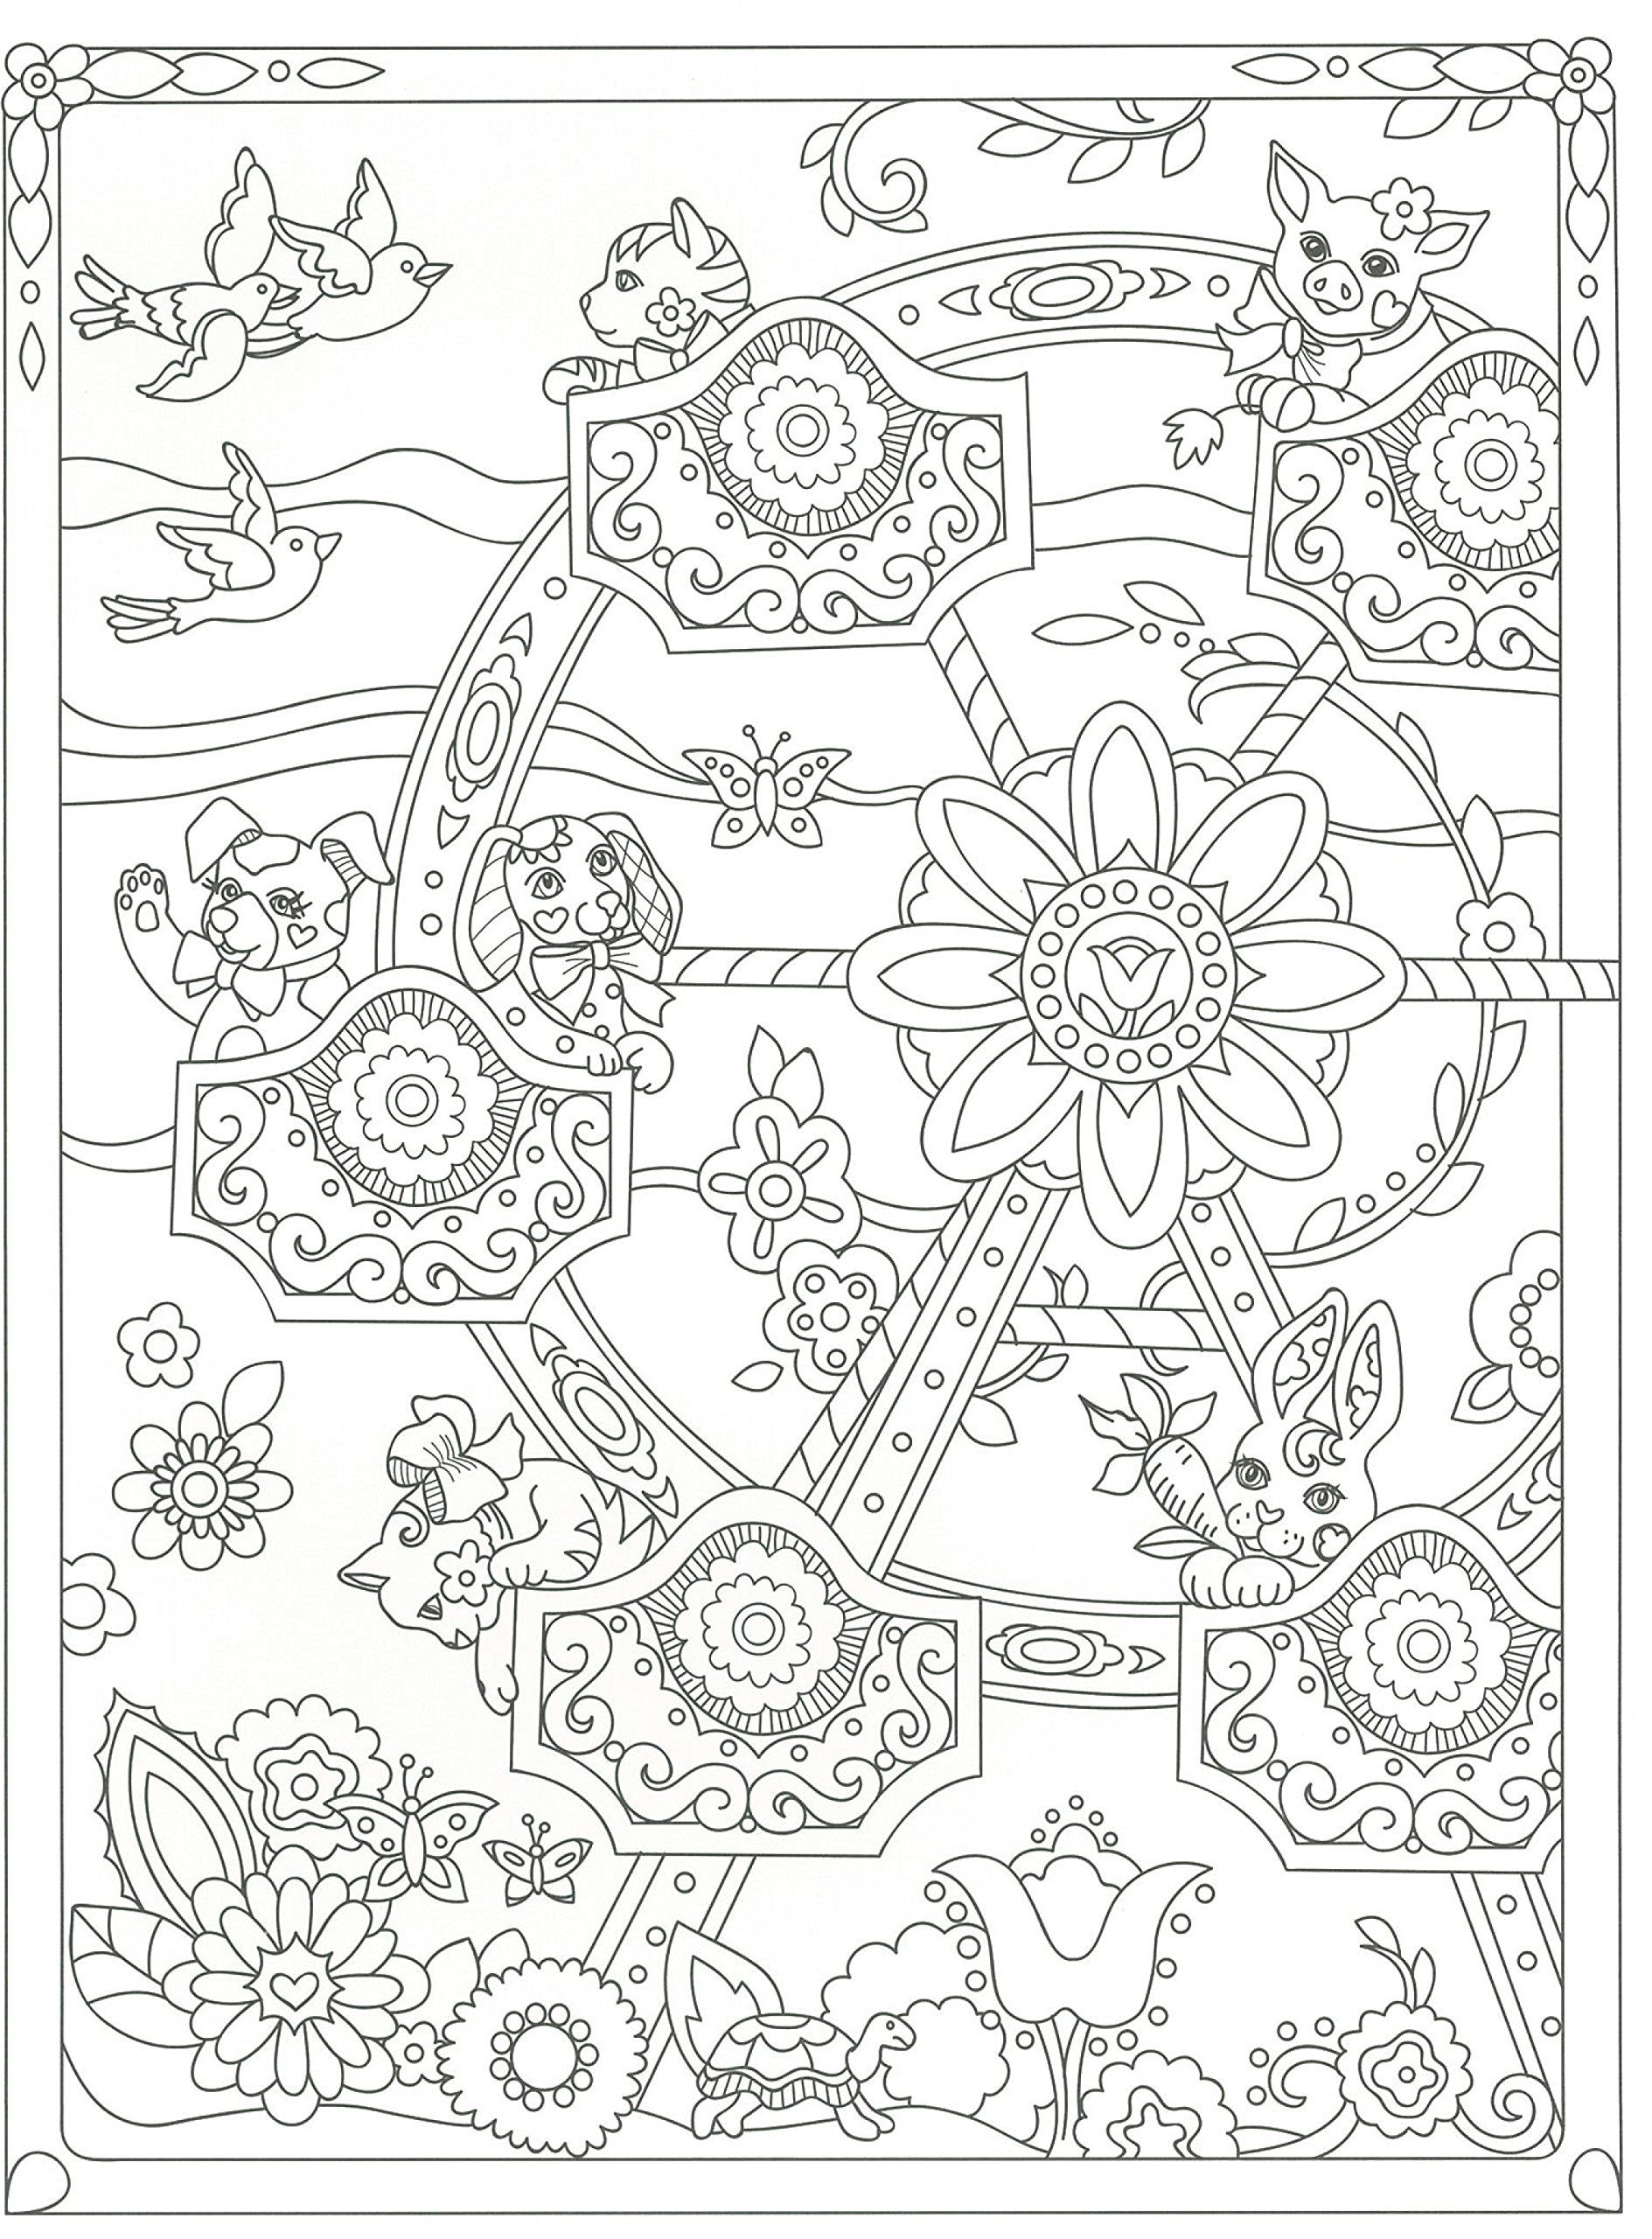 Pin by meagan morrissette on coloring pinterest coloring pages